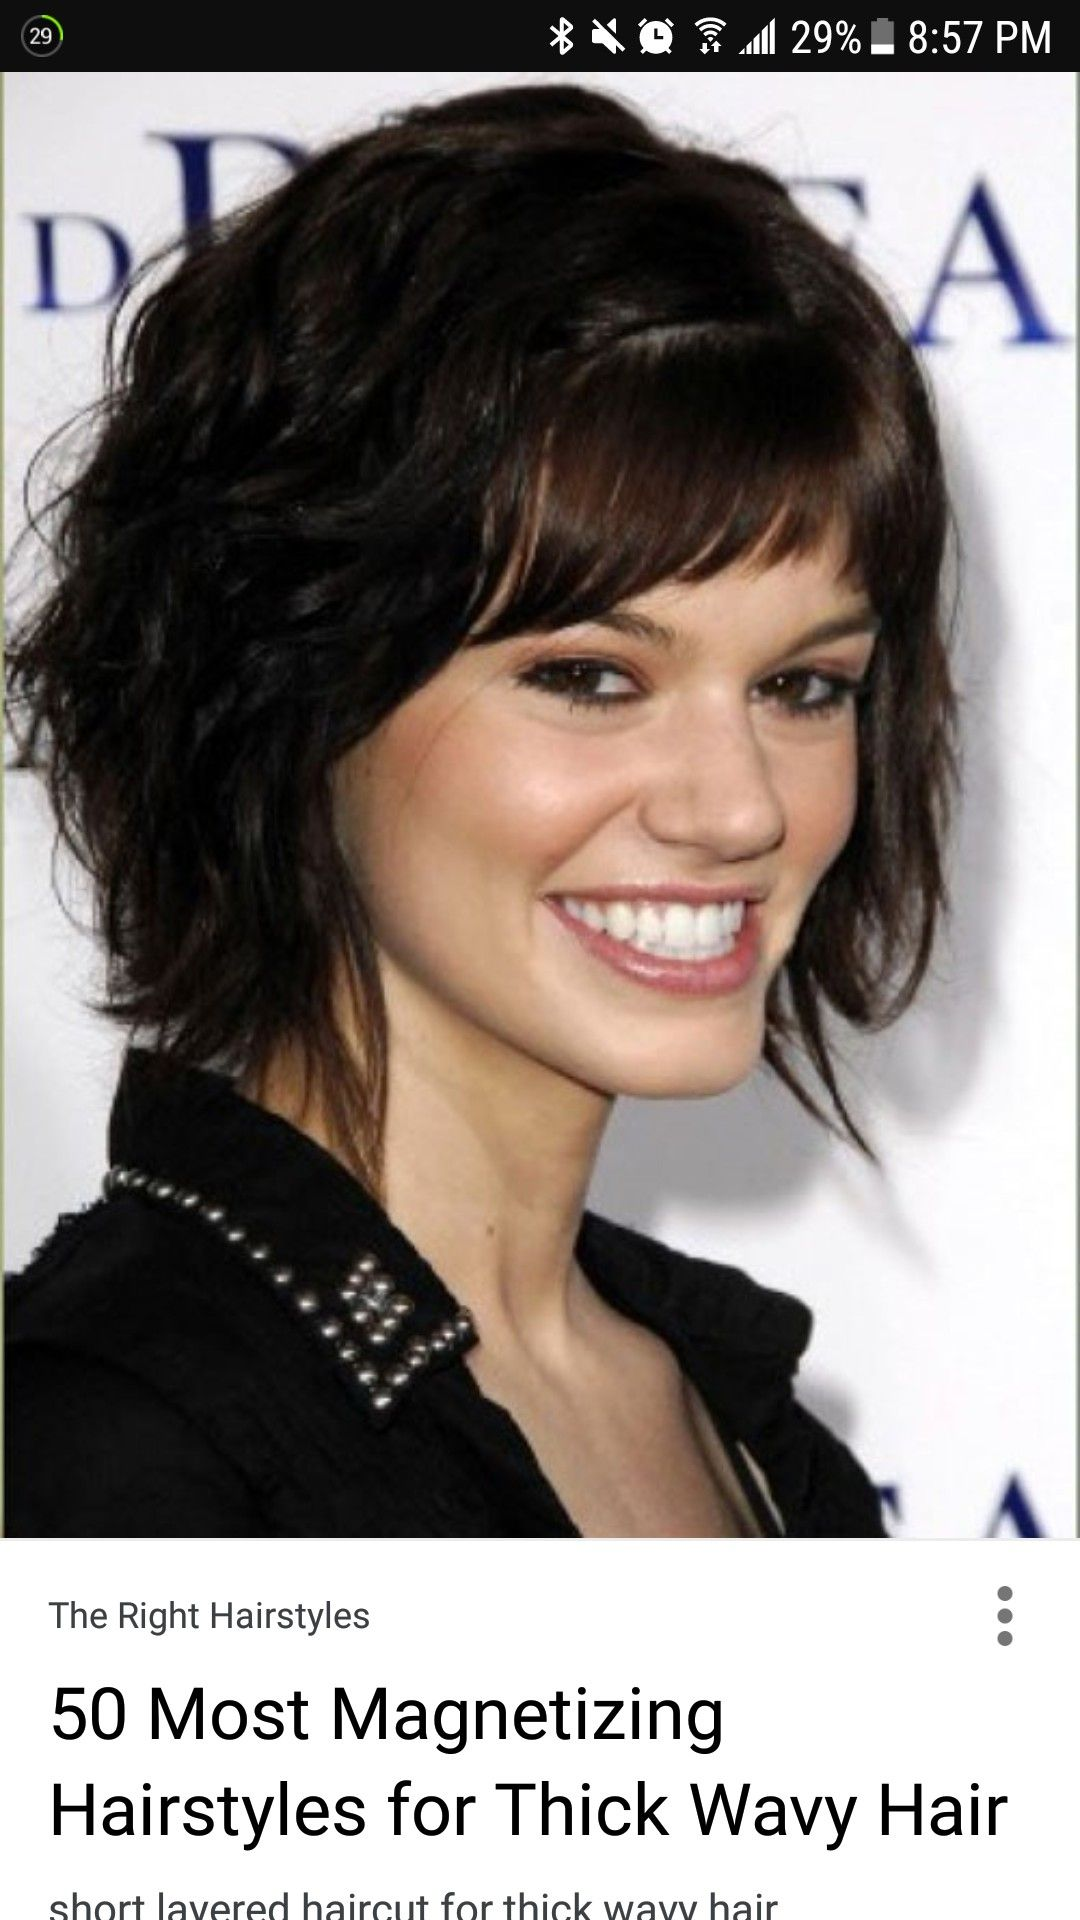 Pin By Laura Hoops On Hair Thick Wavy Hair Woman Thicker Hair Short Hairstyles For Thick Hair